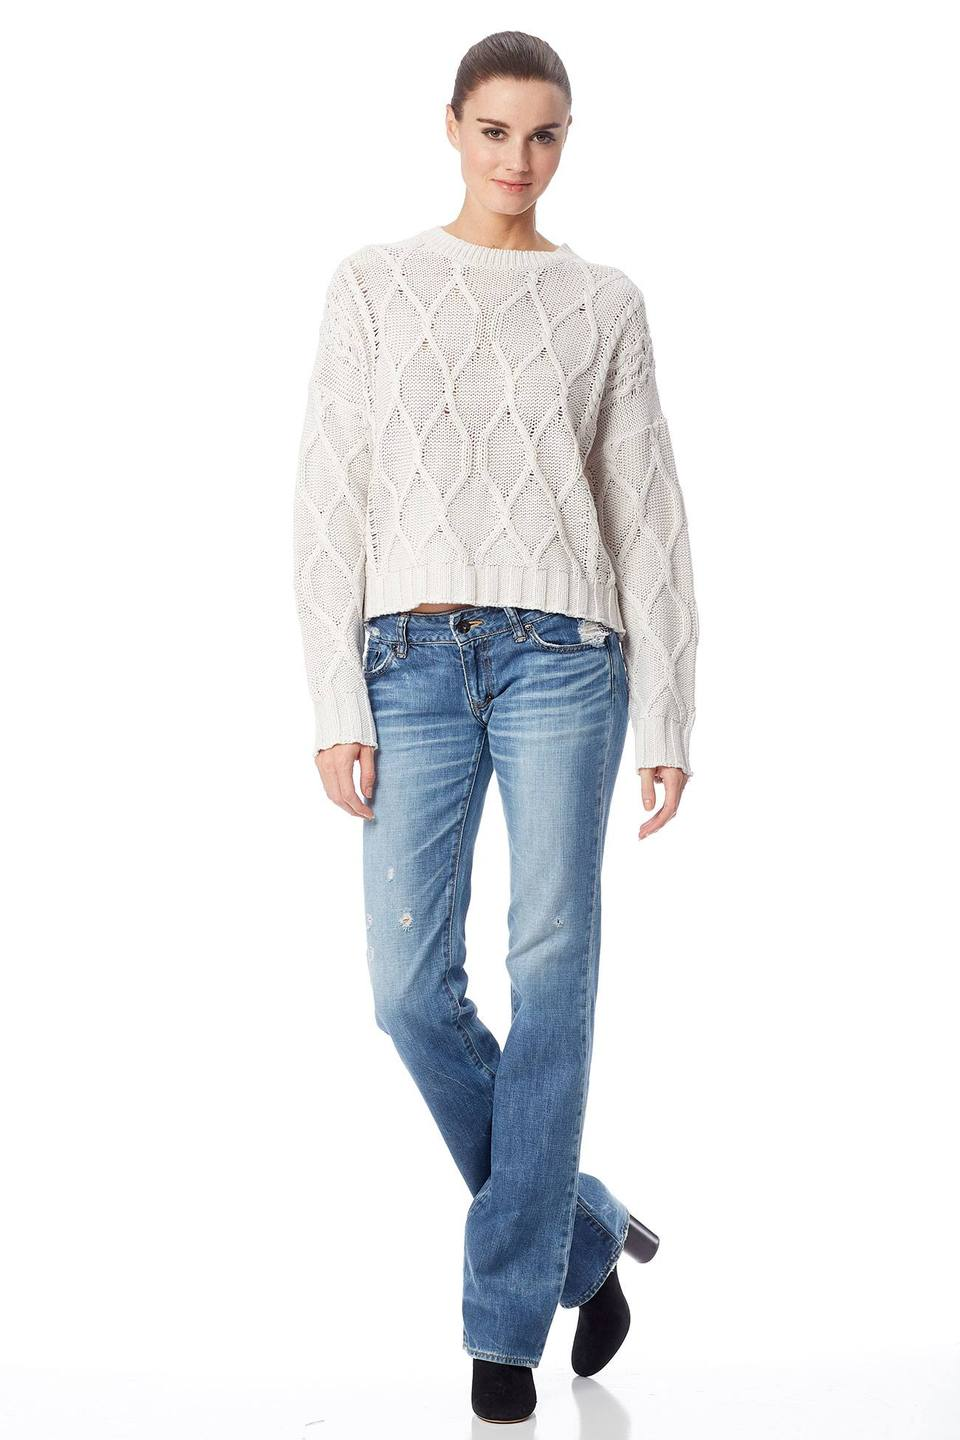 360 SWEATER 36154 alice cable cropped crew